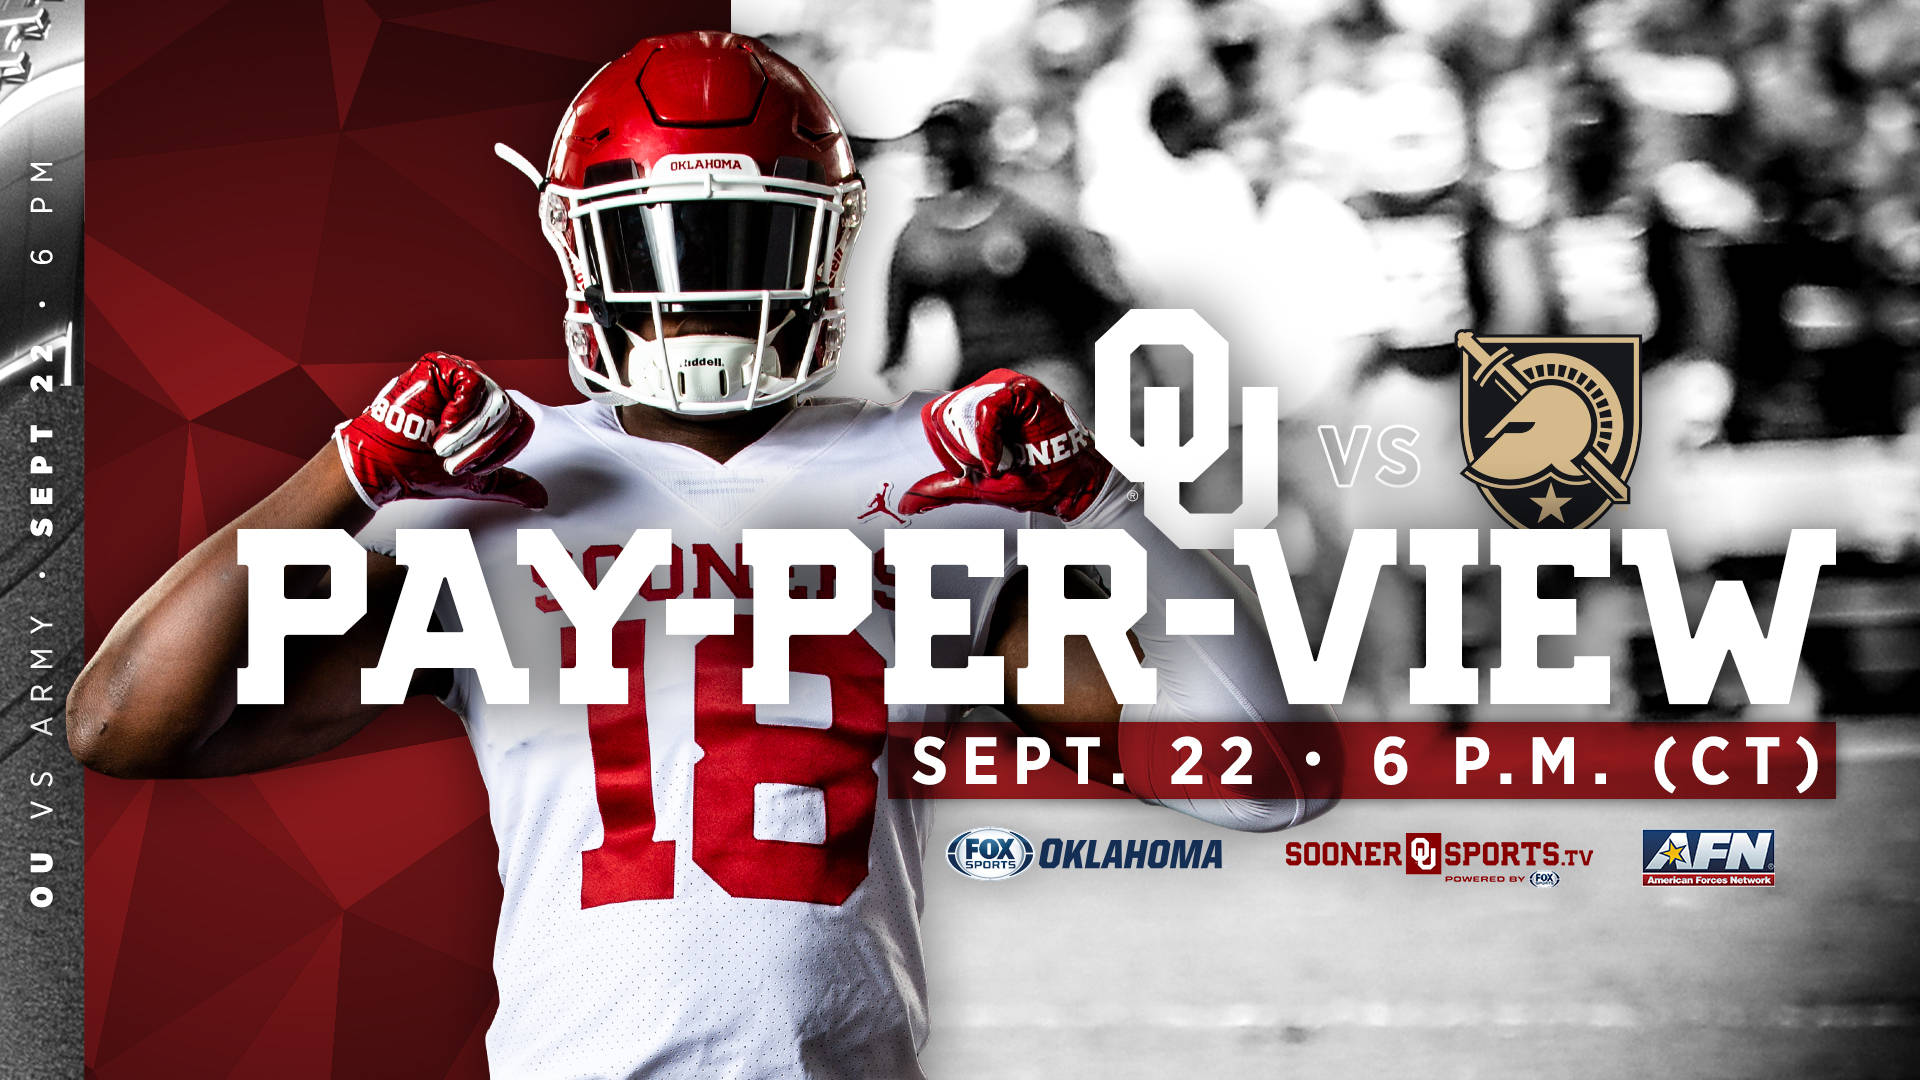 How to Watch OU-Army on Pay-Per-View - University of Oklahoma